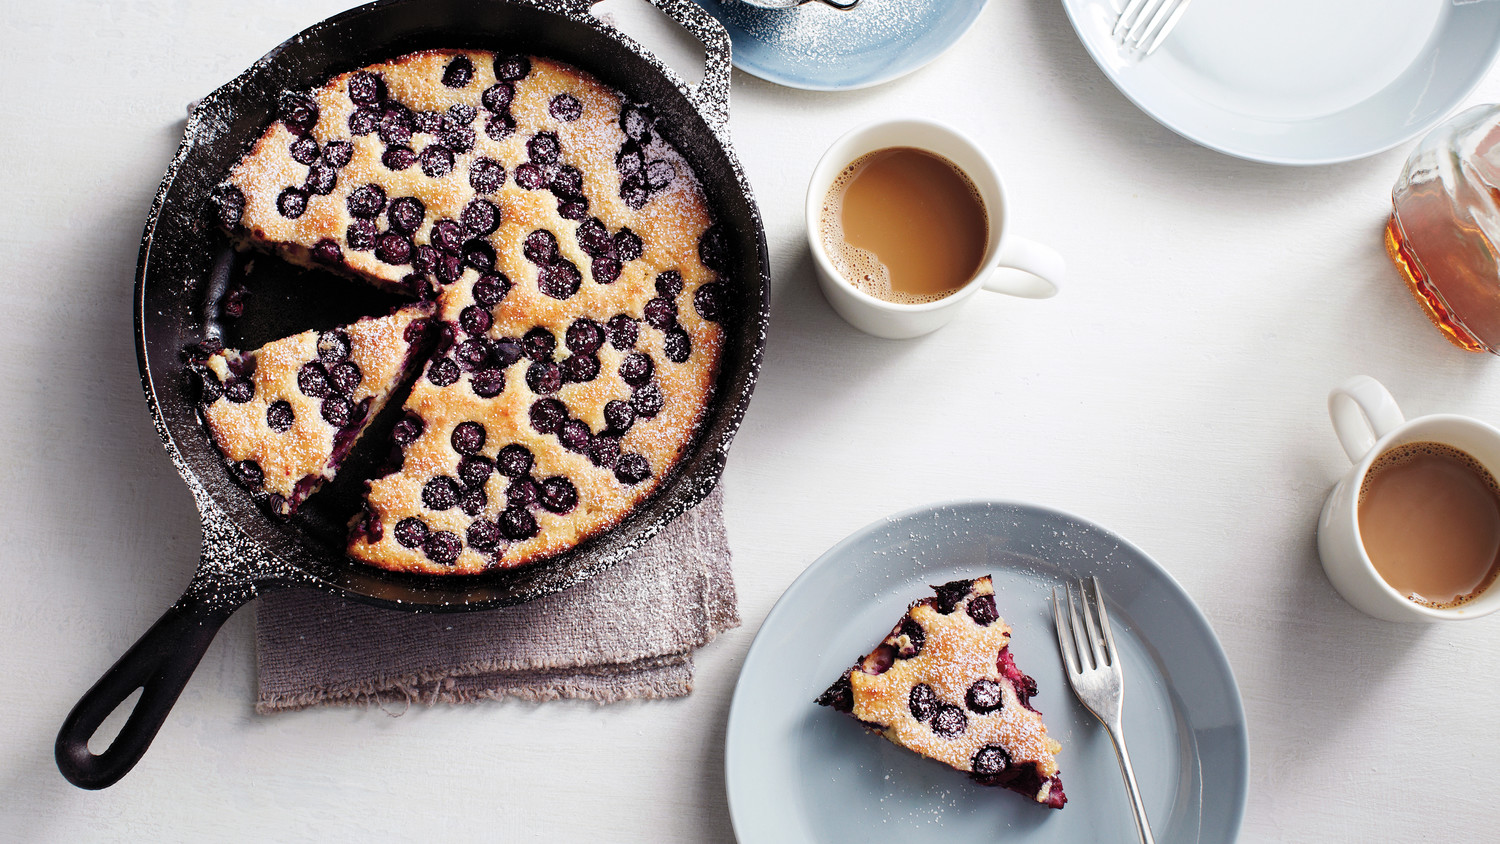 Oven-Baked Blueberry Pancake